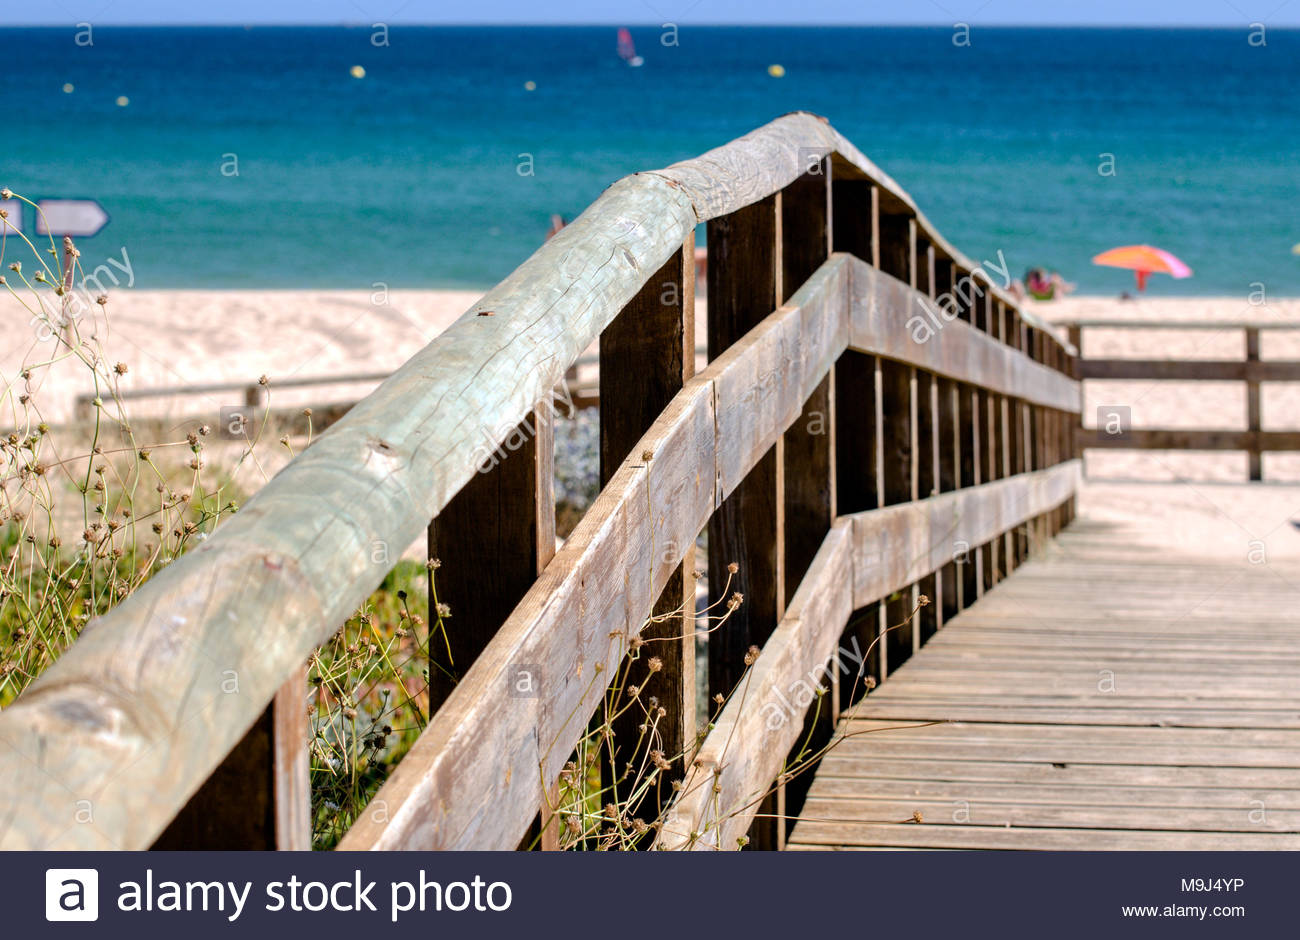 Hygge on the golden beach of Portimao, Portugal - Stock Image